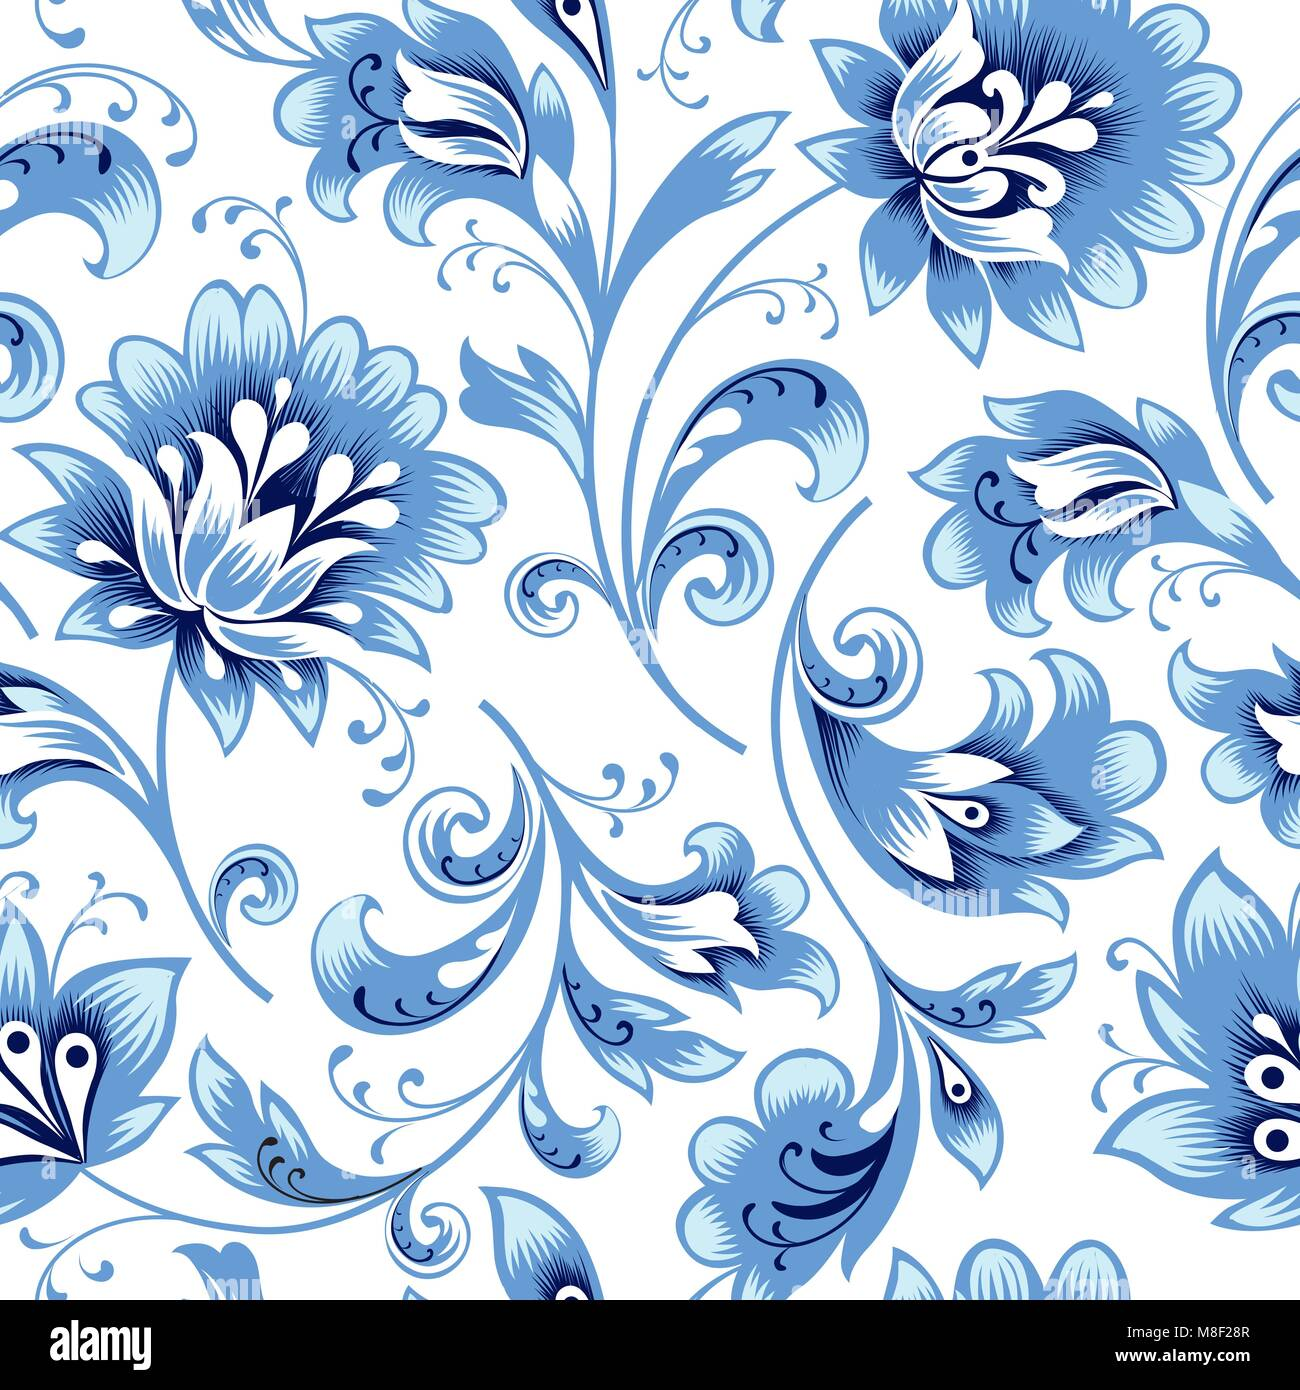 Floral seamless pattern. Flower silhouette ornament. Ornamental flourish background, russian native ethnic style - Stock Image